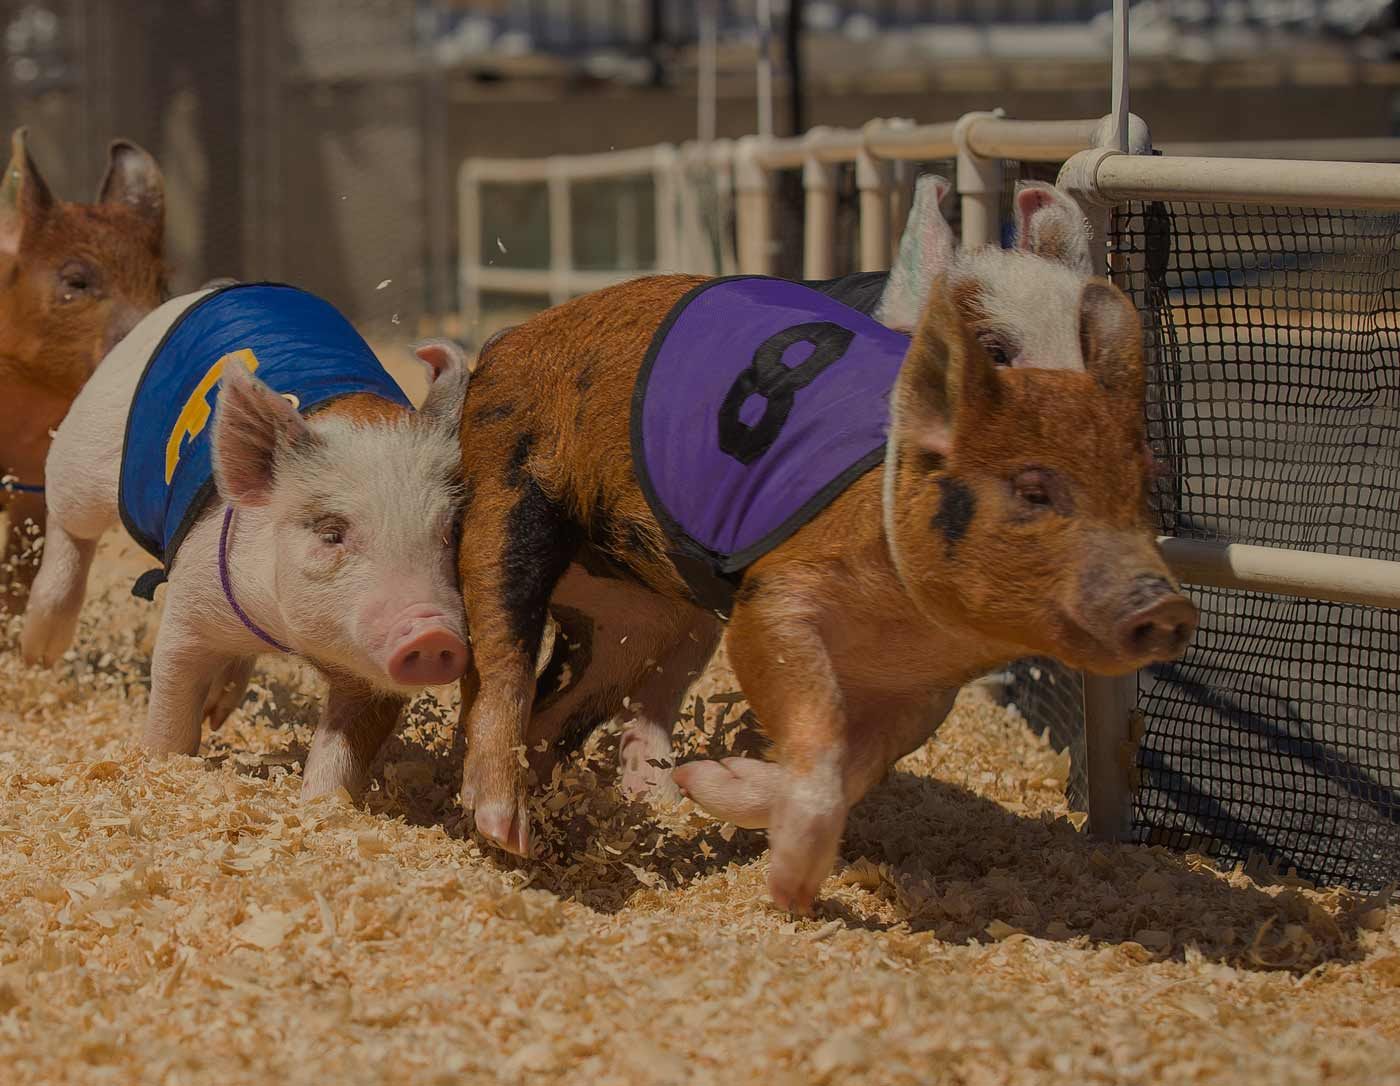 pig-racing-at-the-craft-beer-festival-near-silverstone-001.jpg